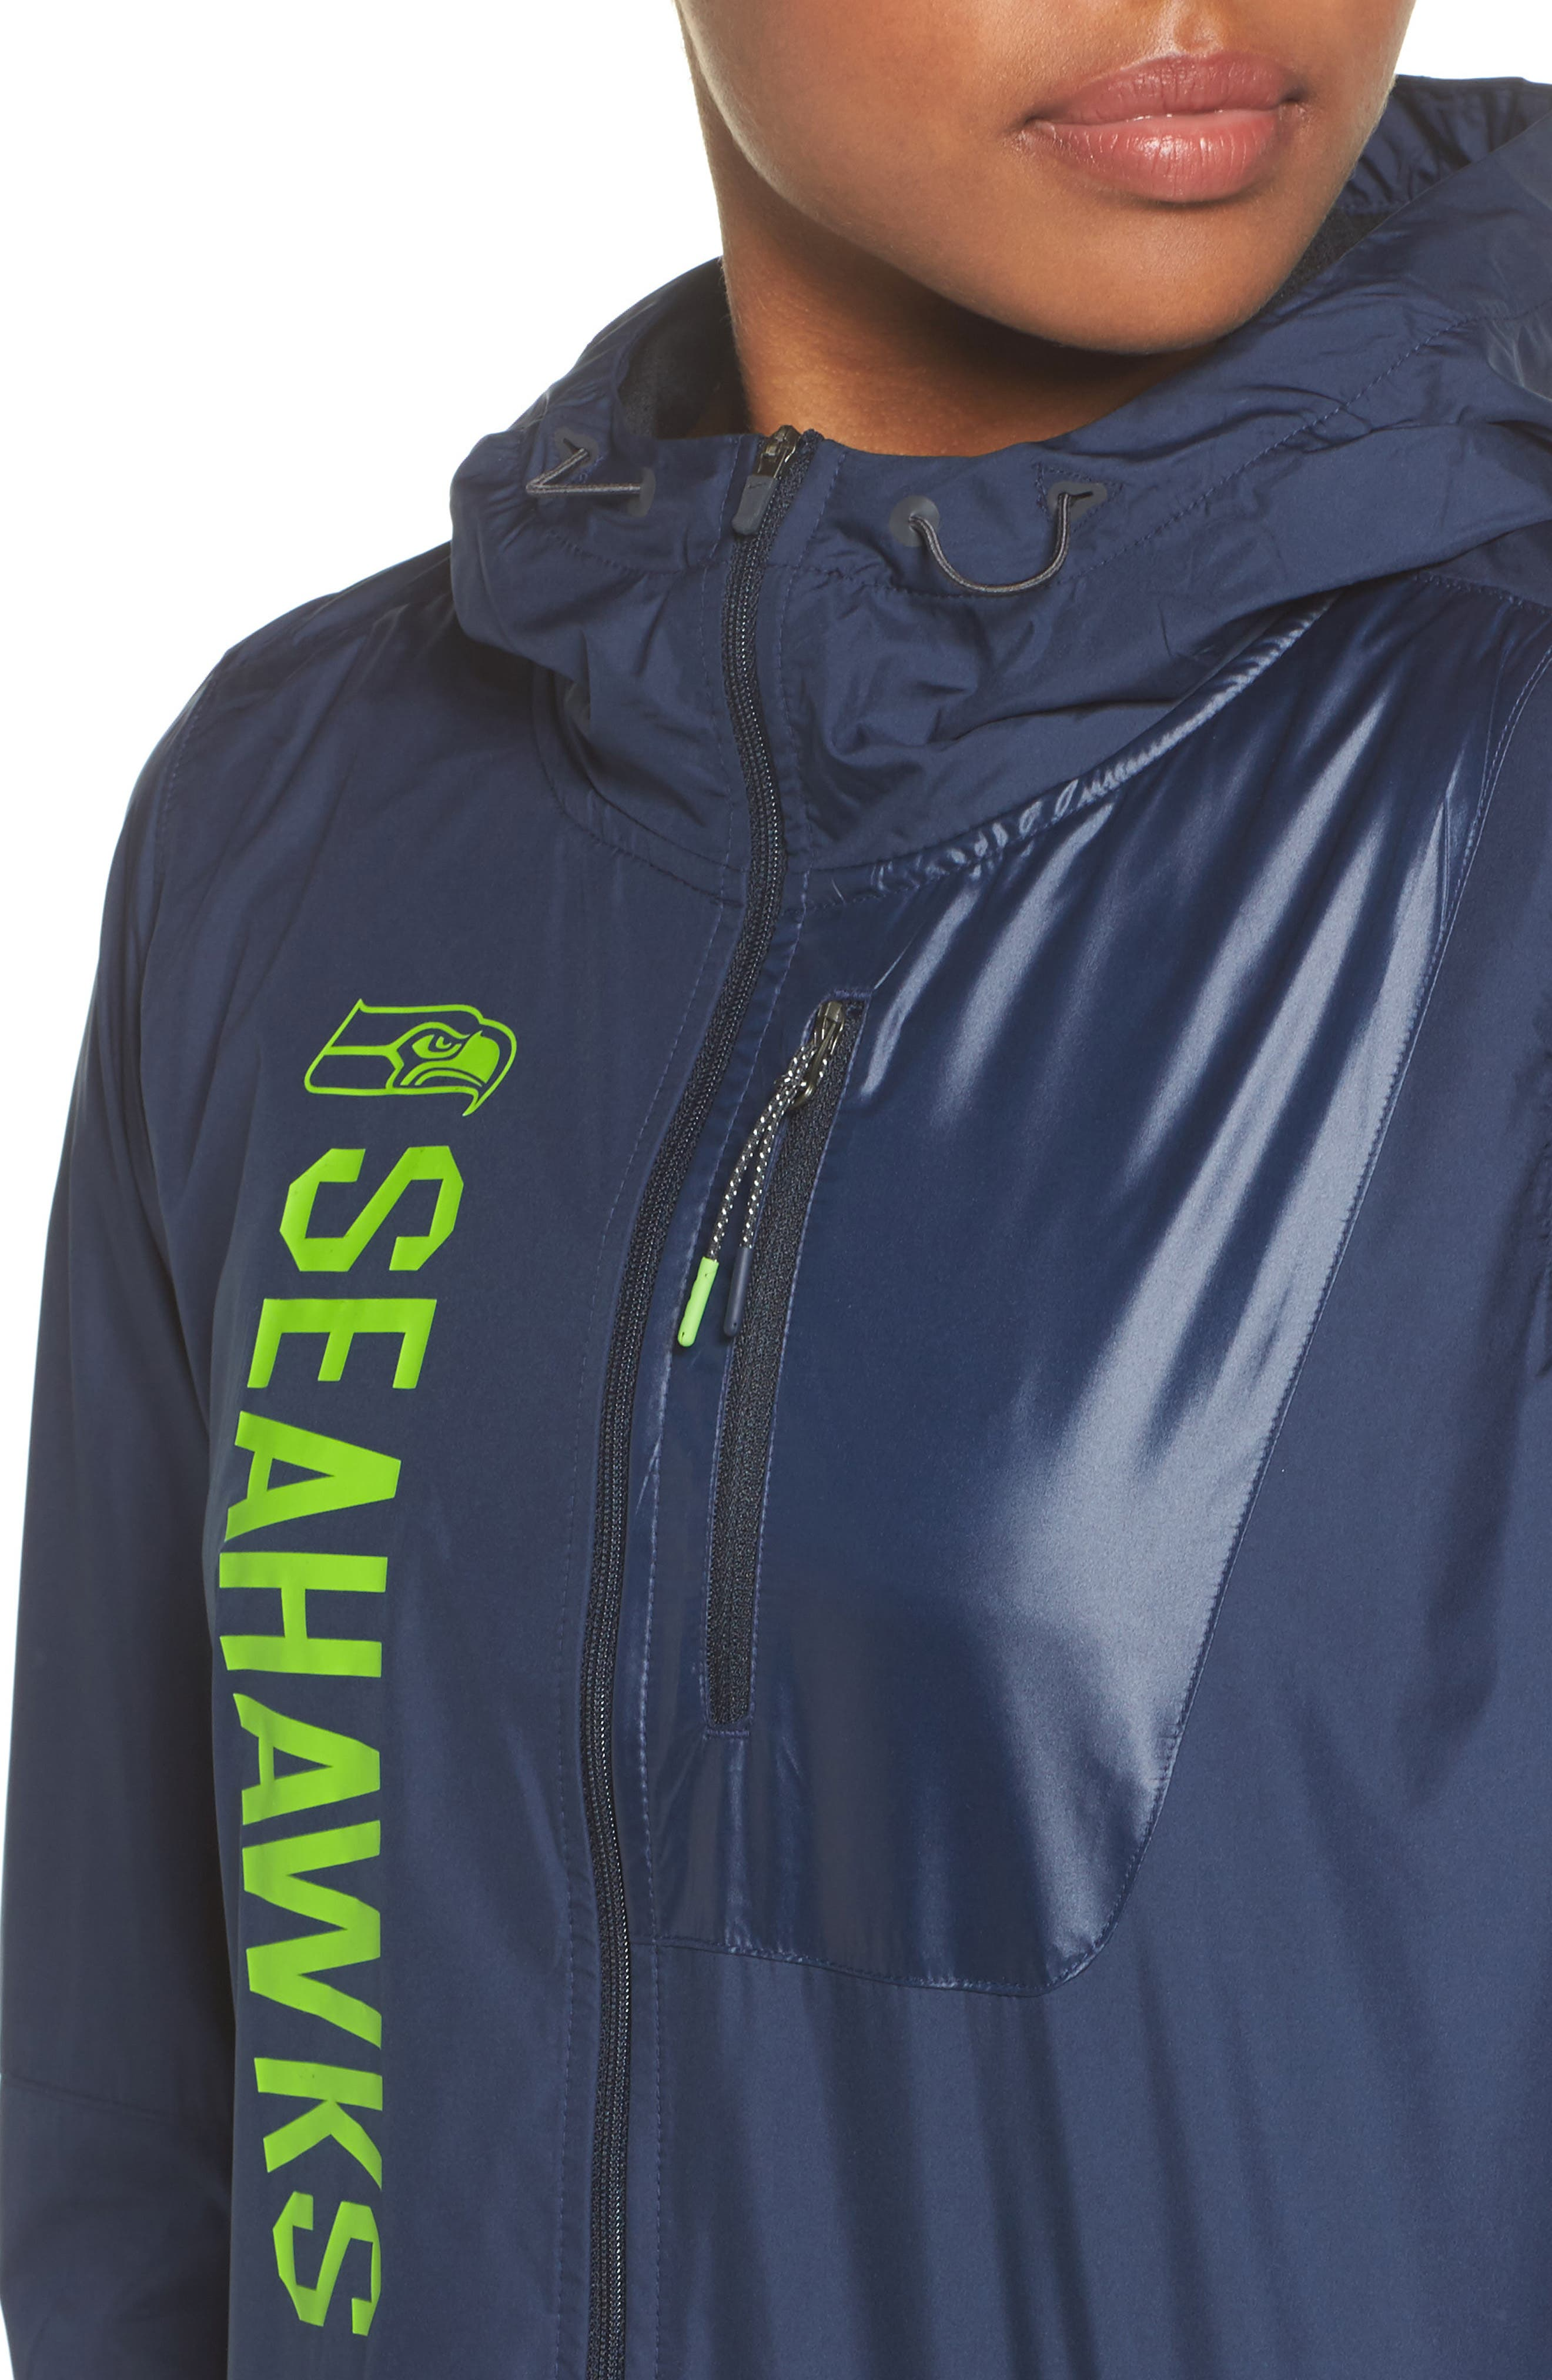 NFL Packable Water Resistant Jacket,                             Alternate thumbnail 4, color,